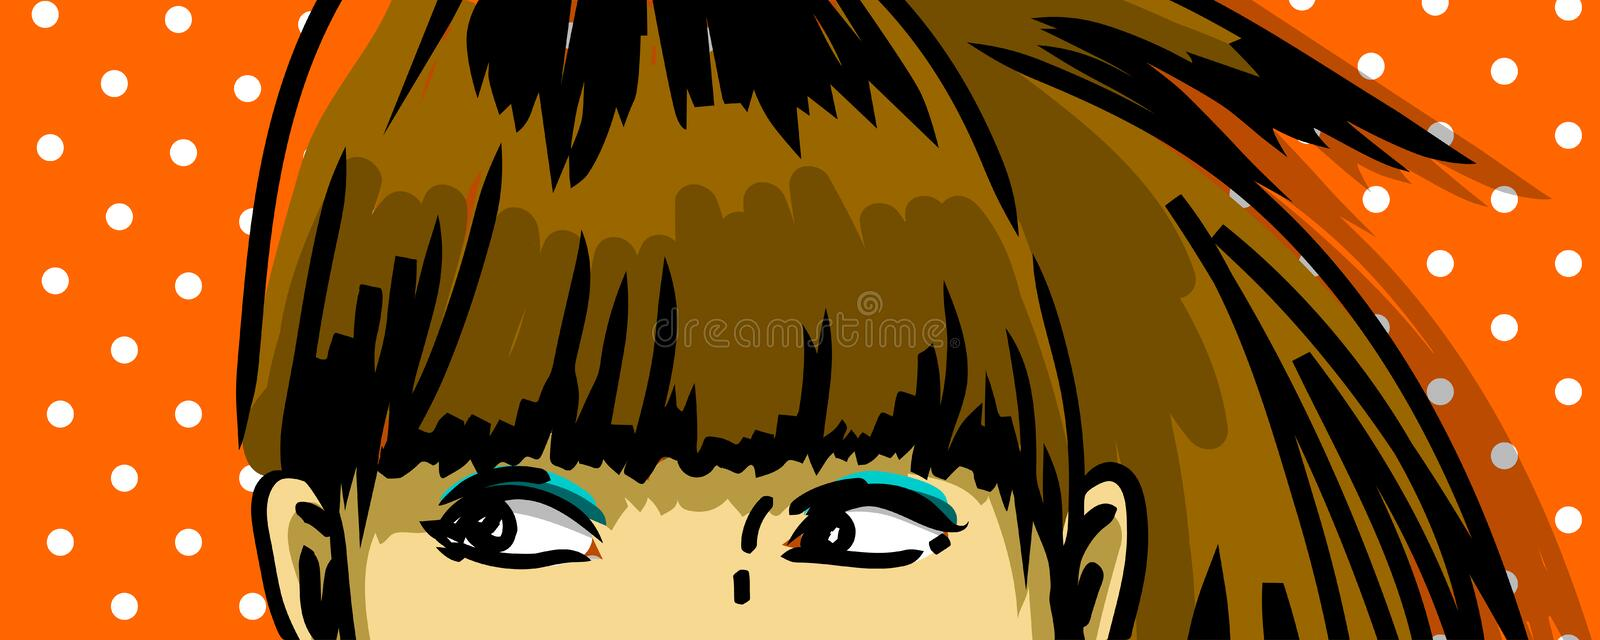 Pencive woman peeking stock illustration